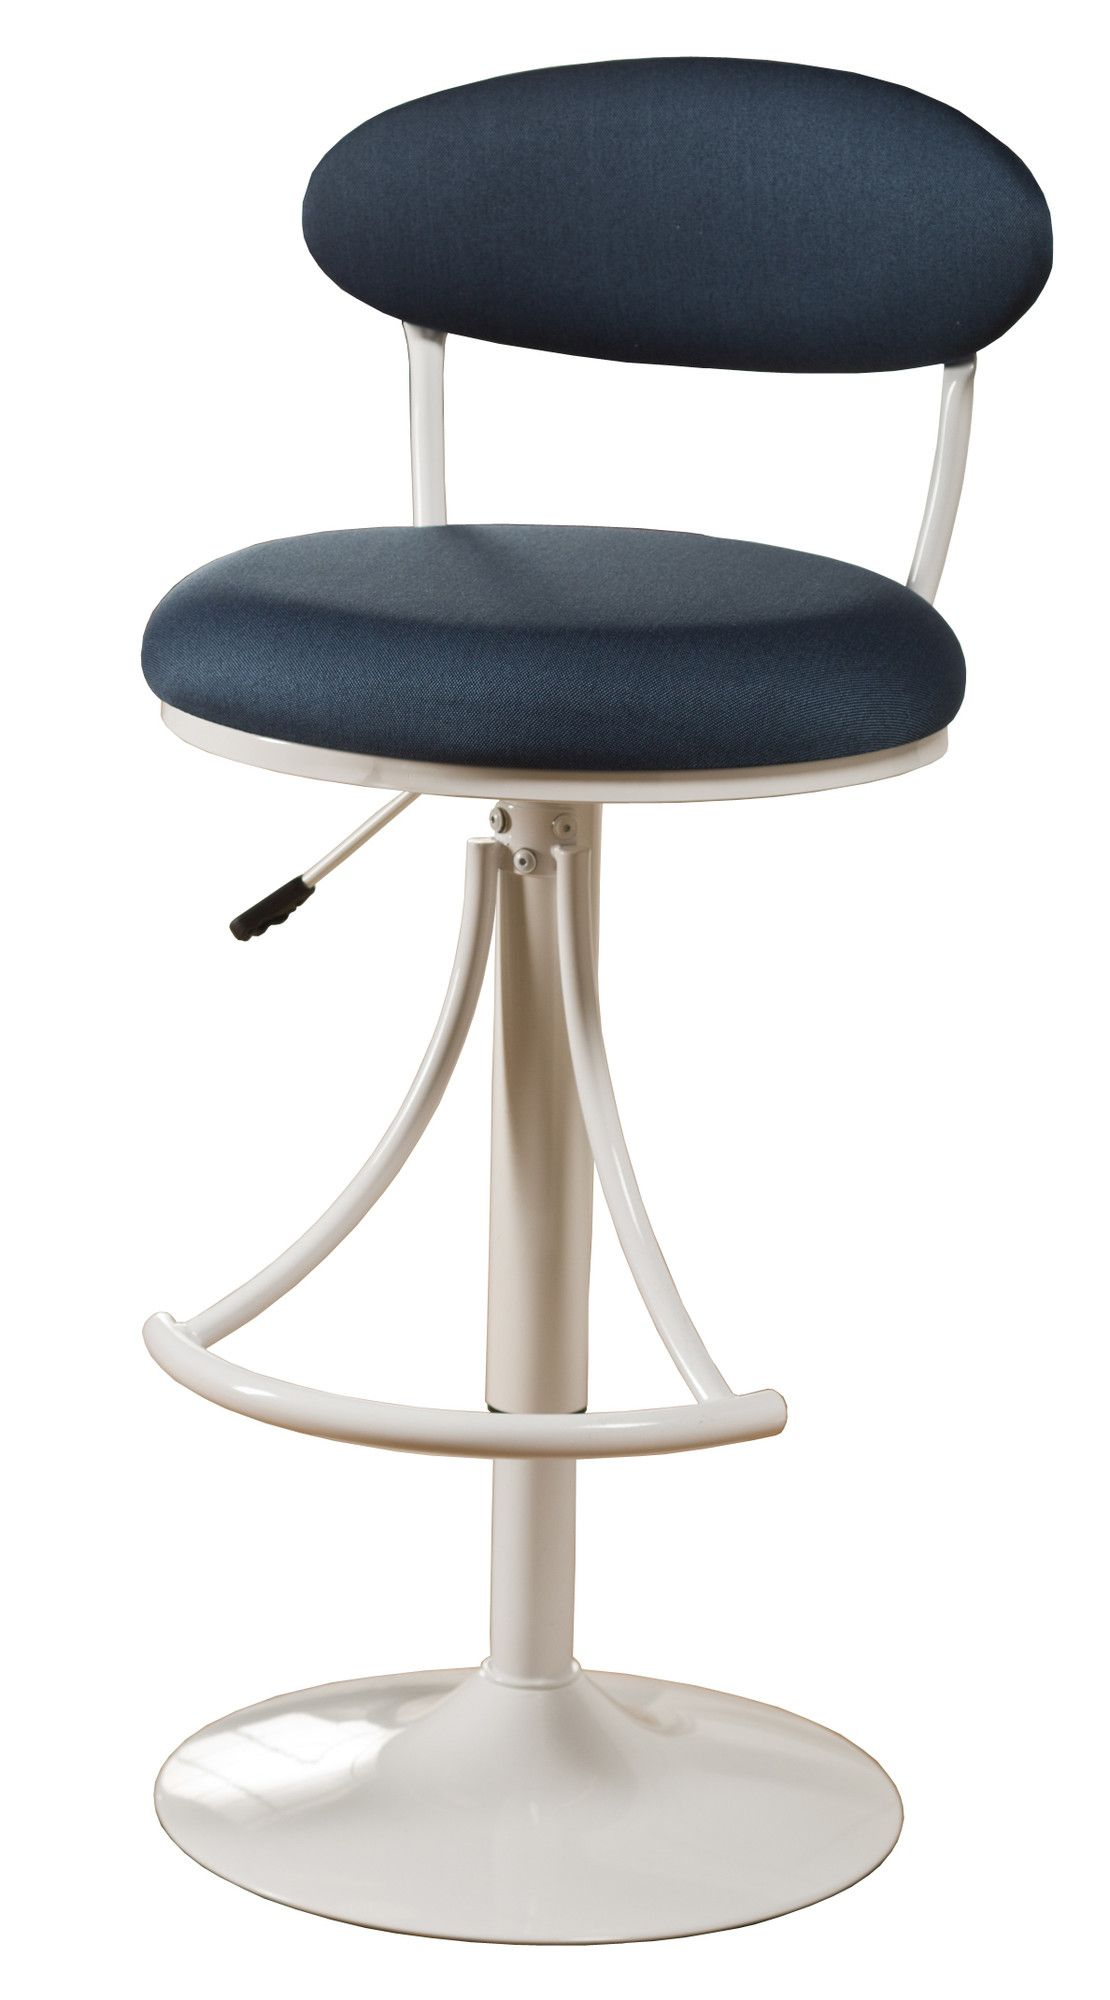 Remarkable 120 Hillsdale Venus Adjustable Swivel Barstool With Fabric Beatyapartments Chair Design Images Beatyapartmentscom